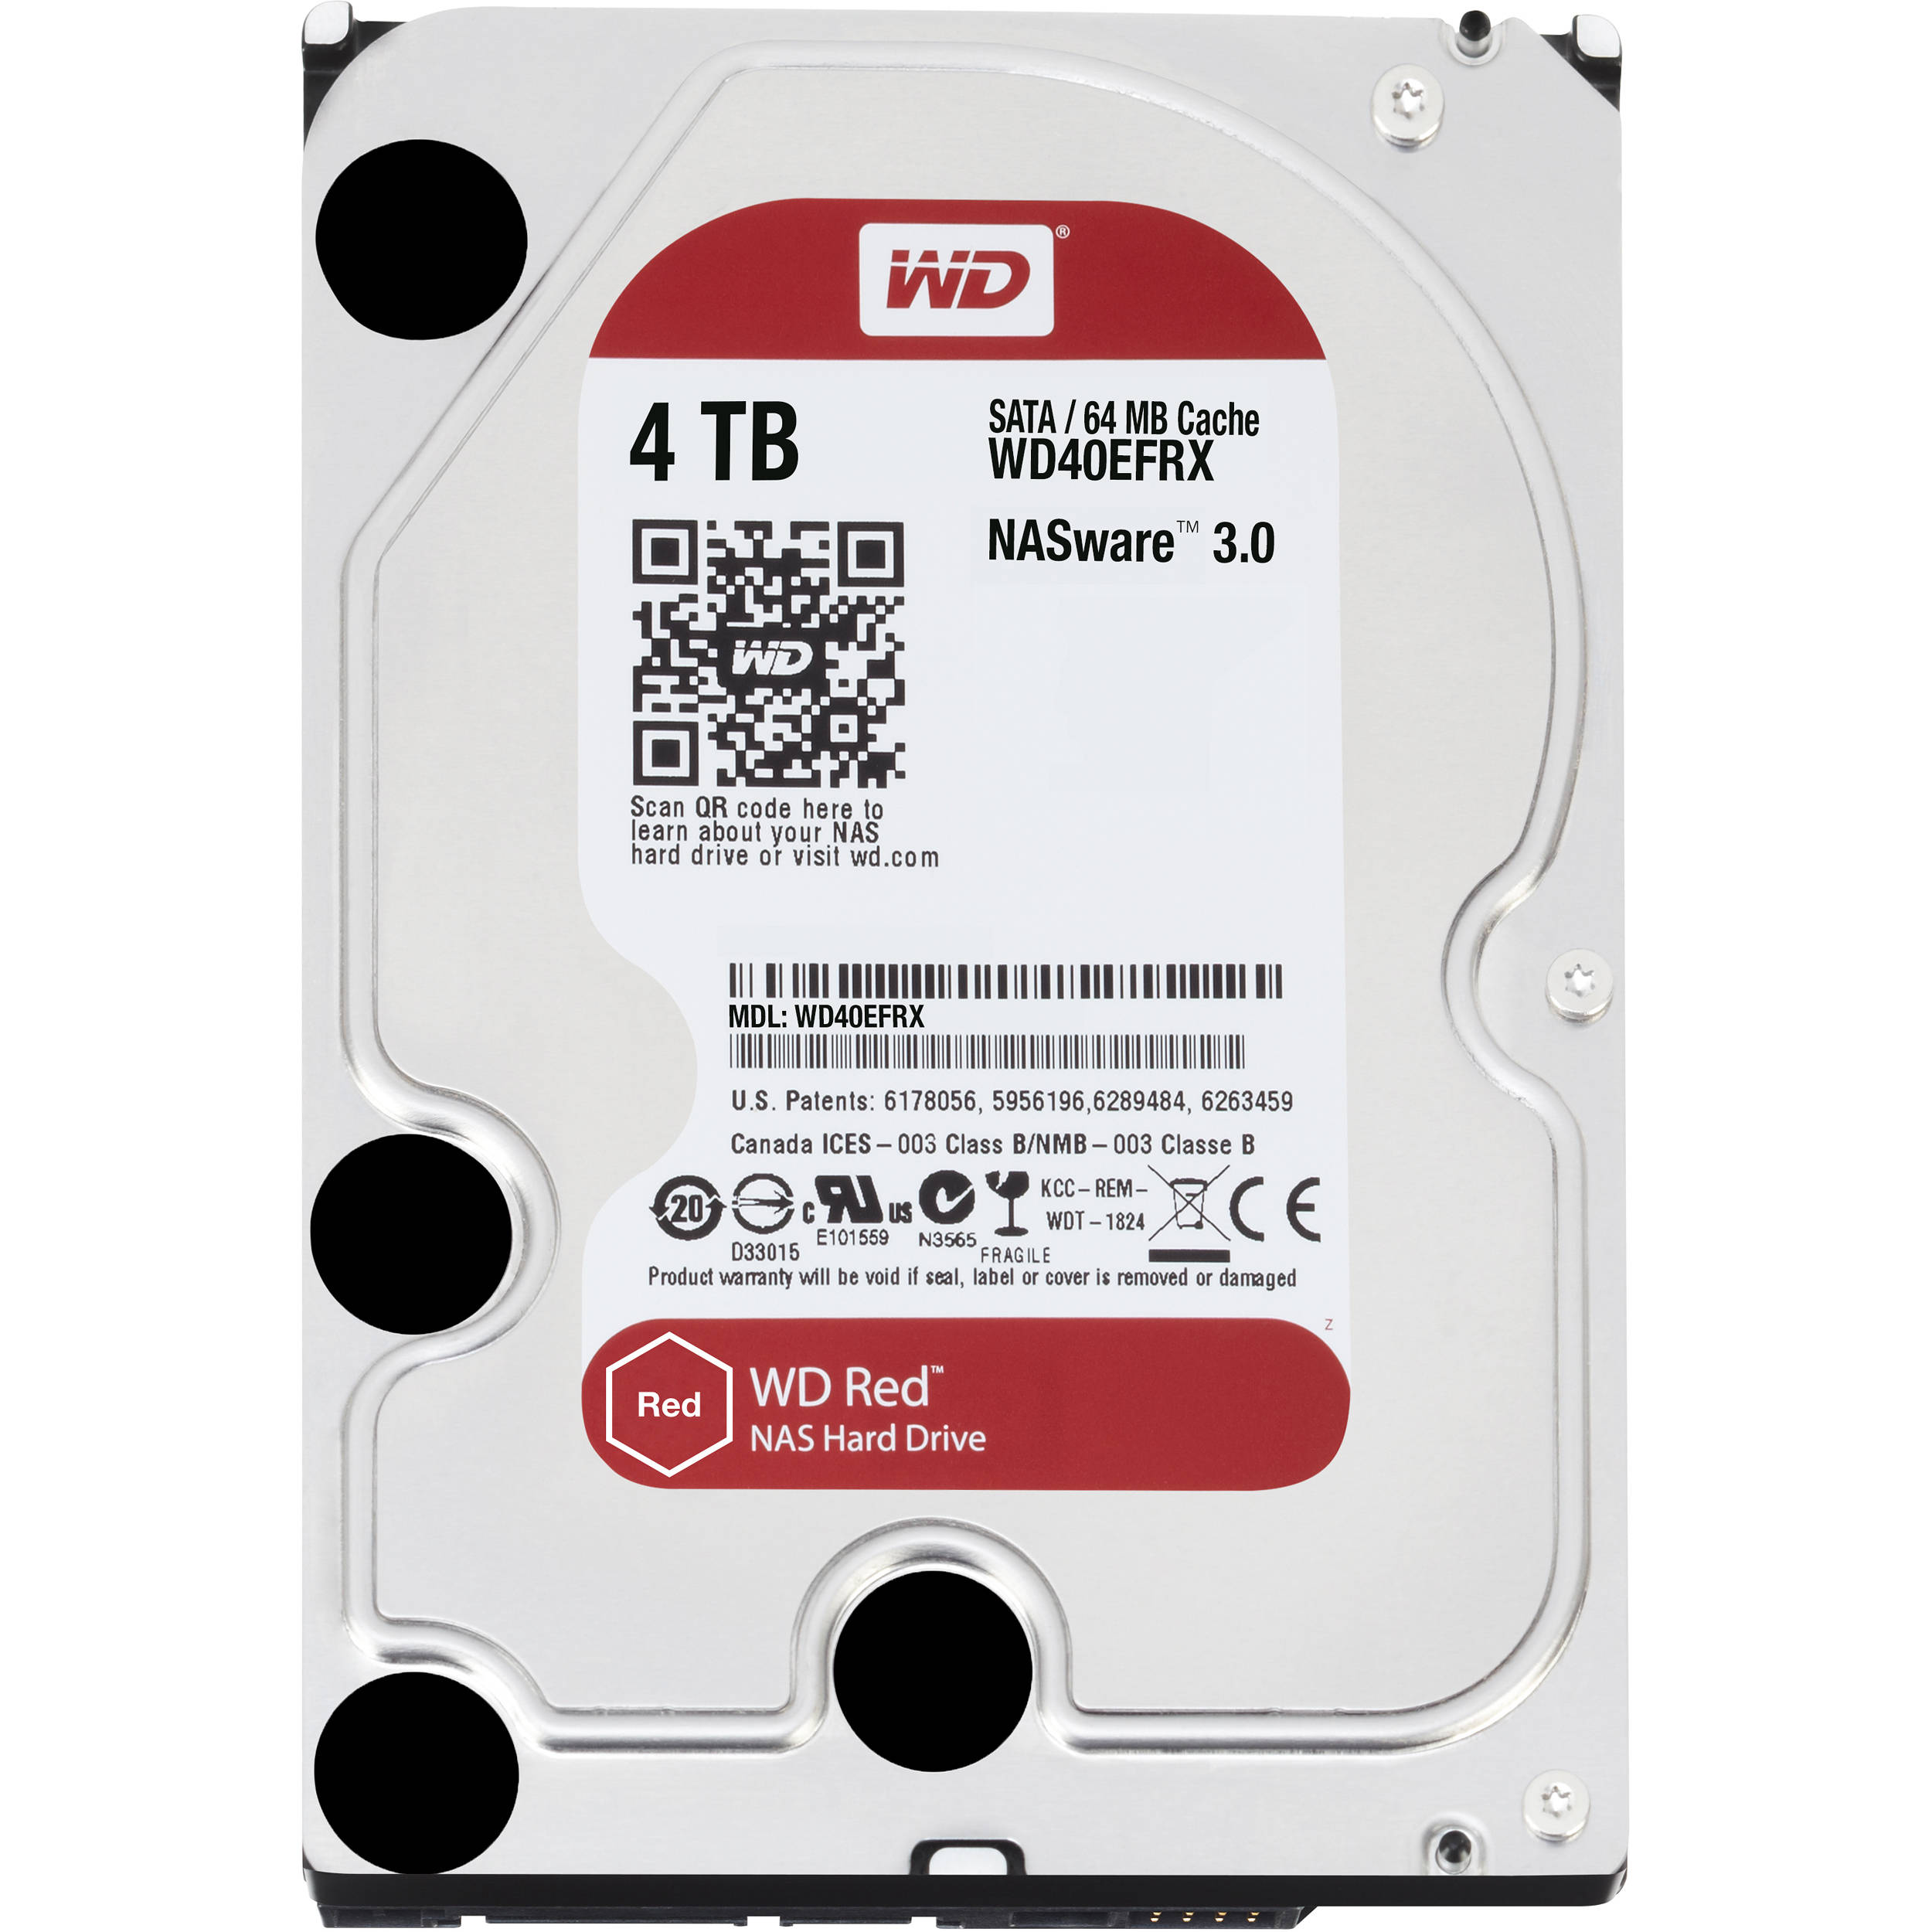 wd 4tb red 5400 rpm sata iii 3 5 internal nas hdd wd40efrx. Black Bedroom Furniture Sets. Home Design Ideas